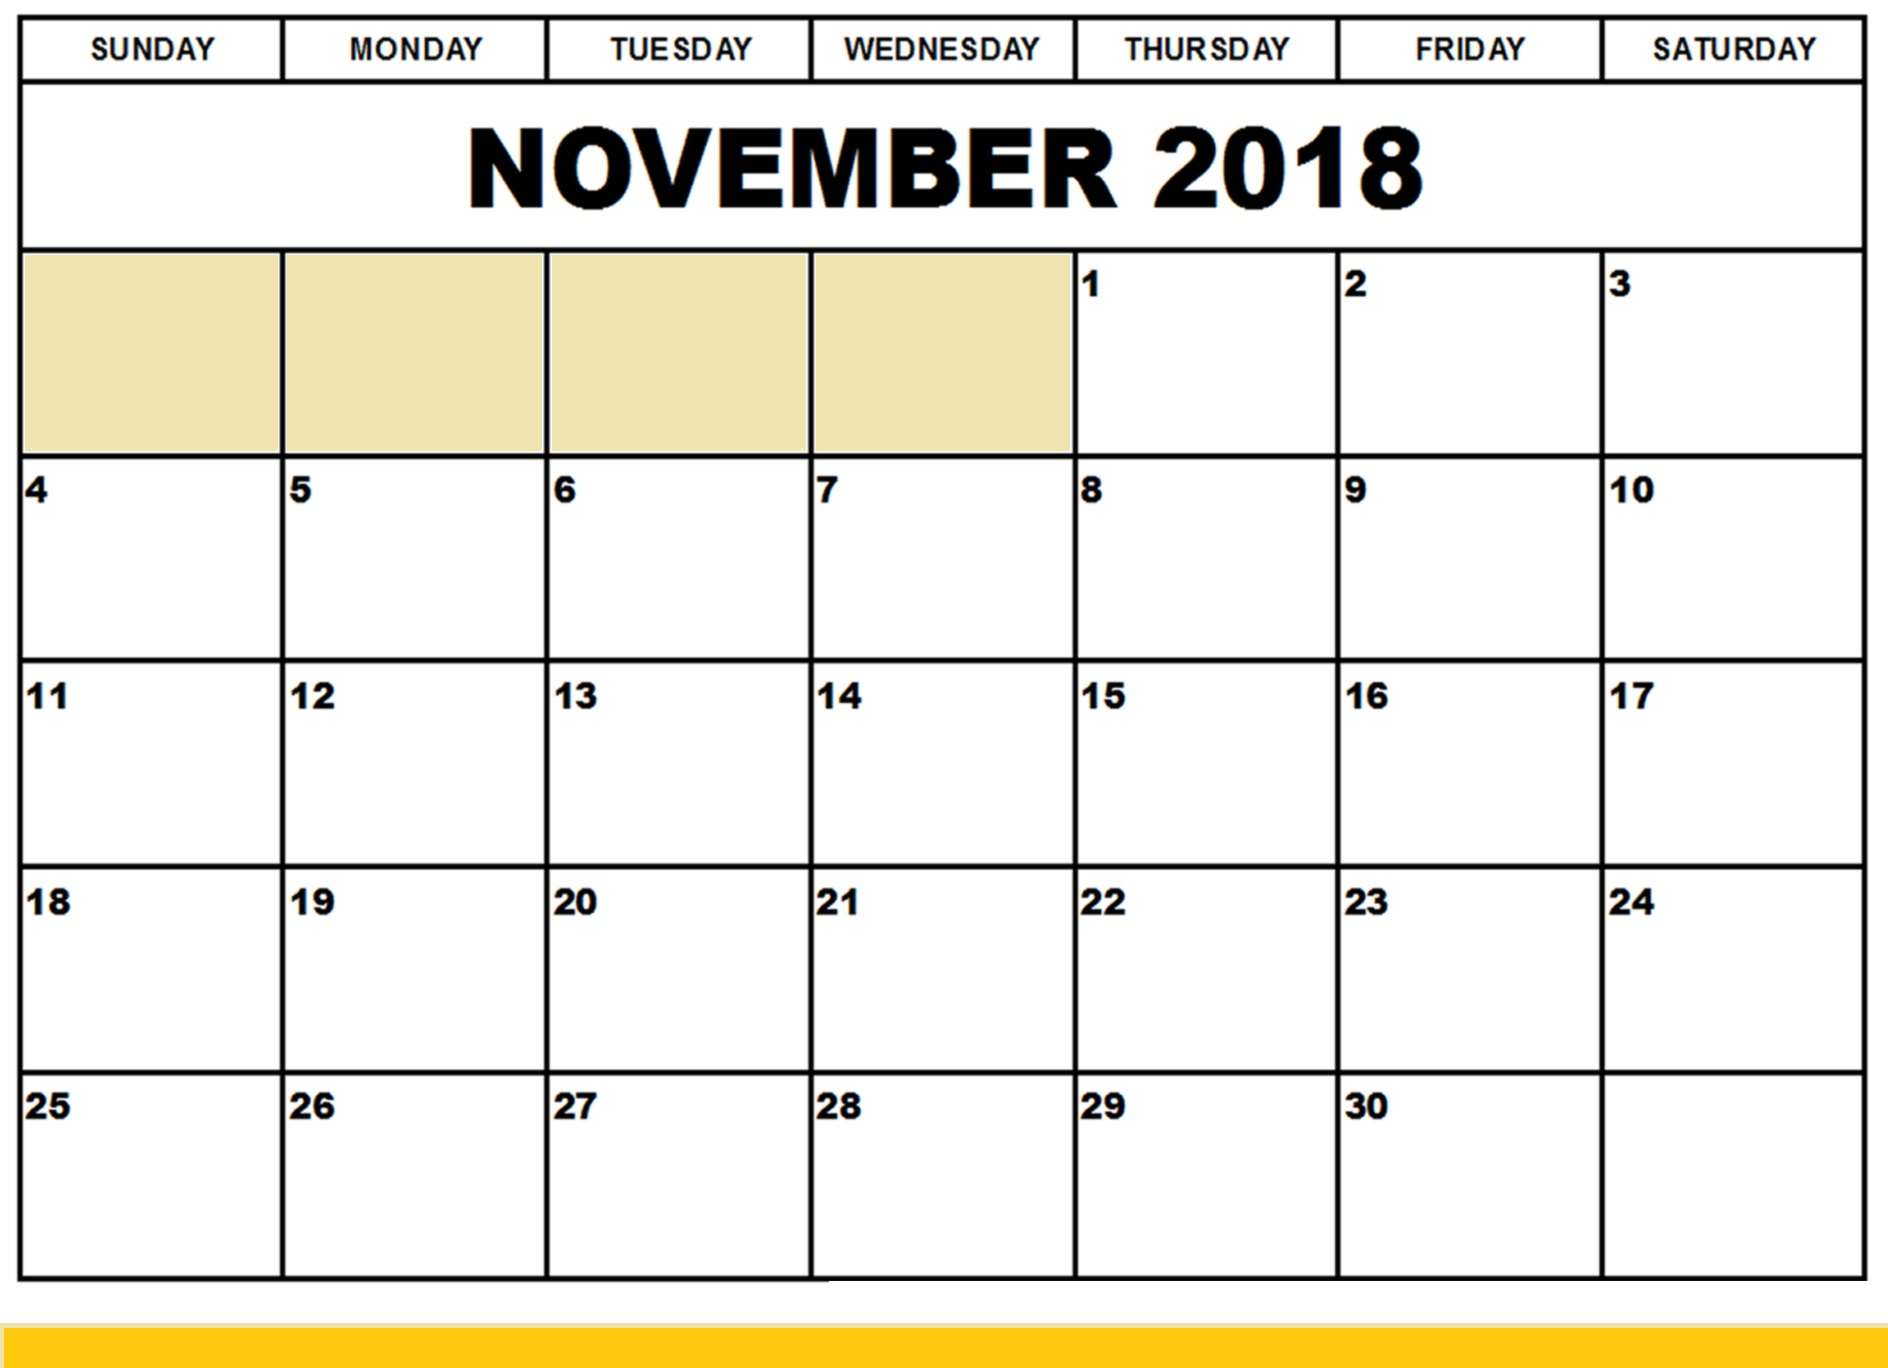 graphic regarding Printable November Calendar called November 2018 Calendar Printable Templates Absolutely free Obtain